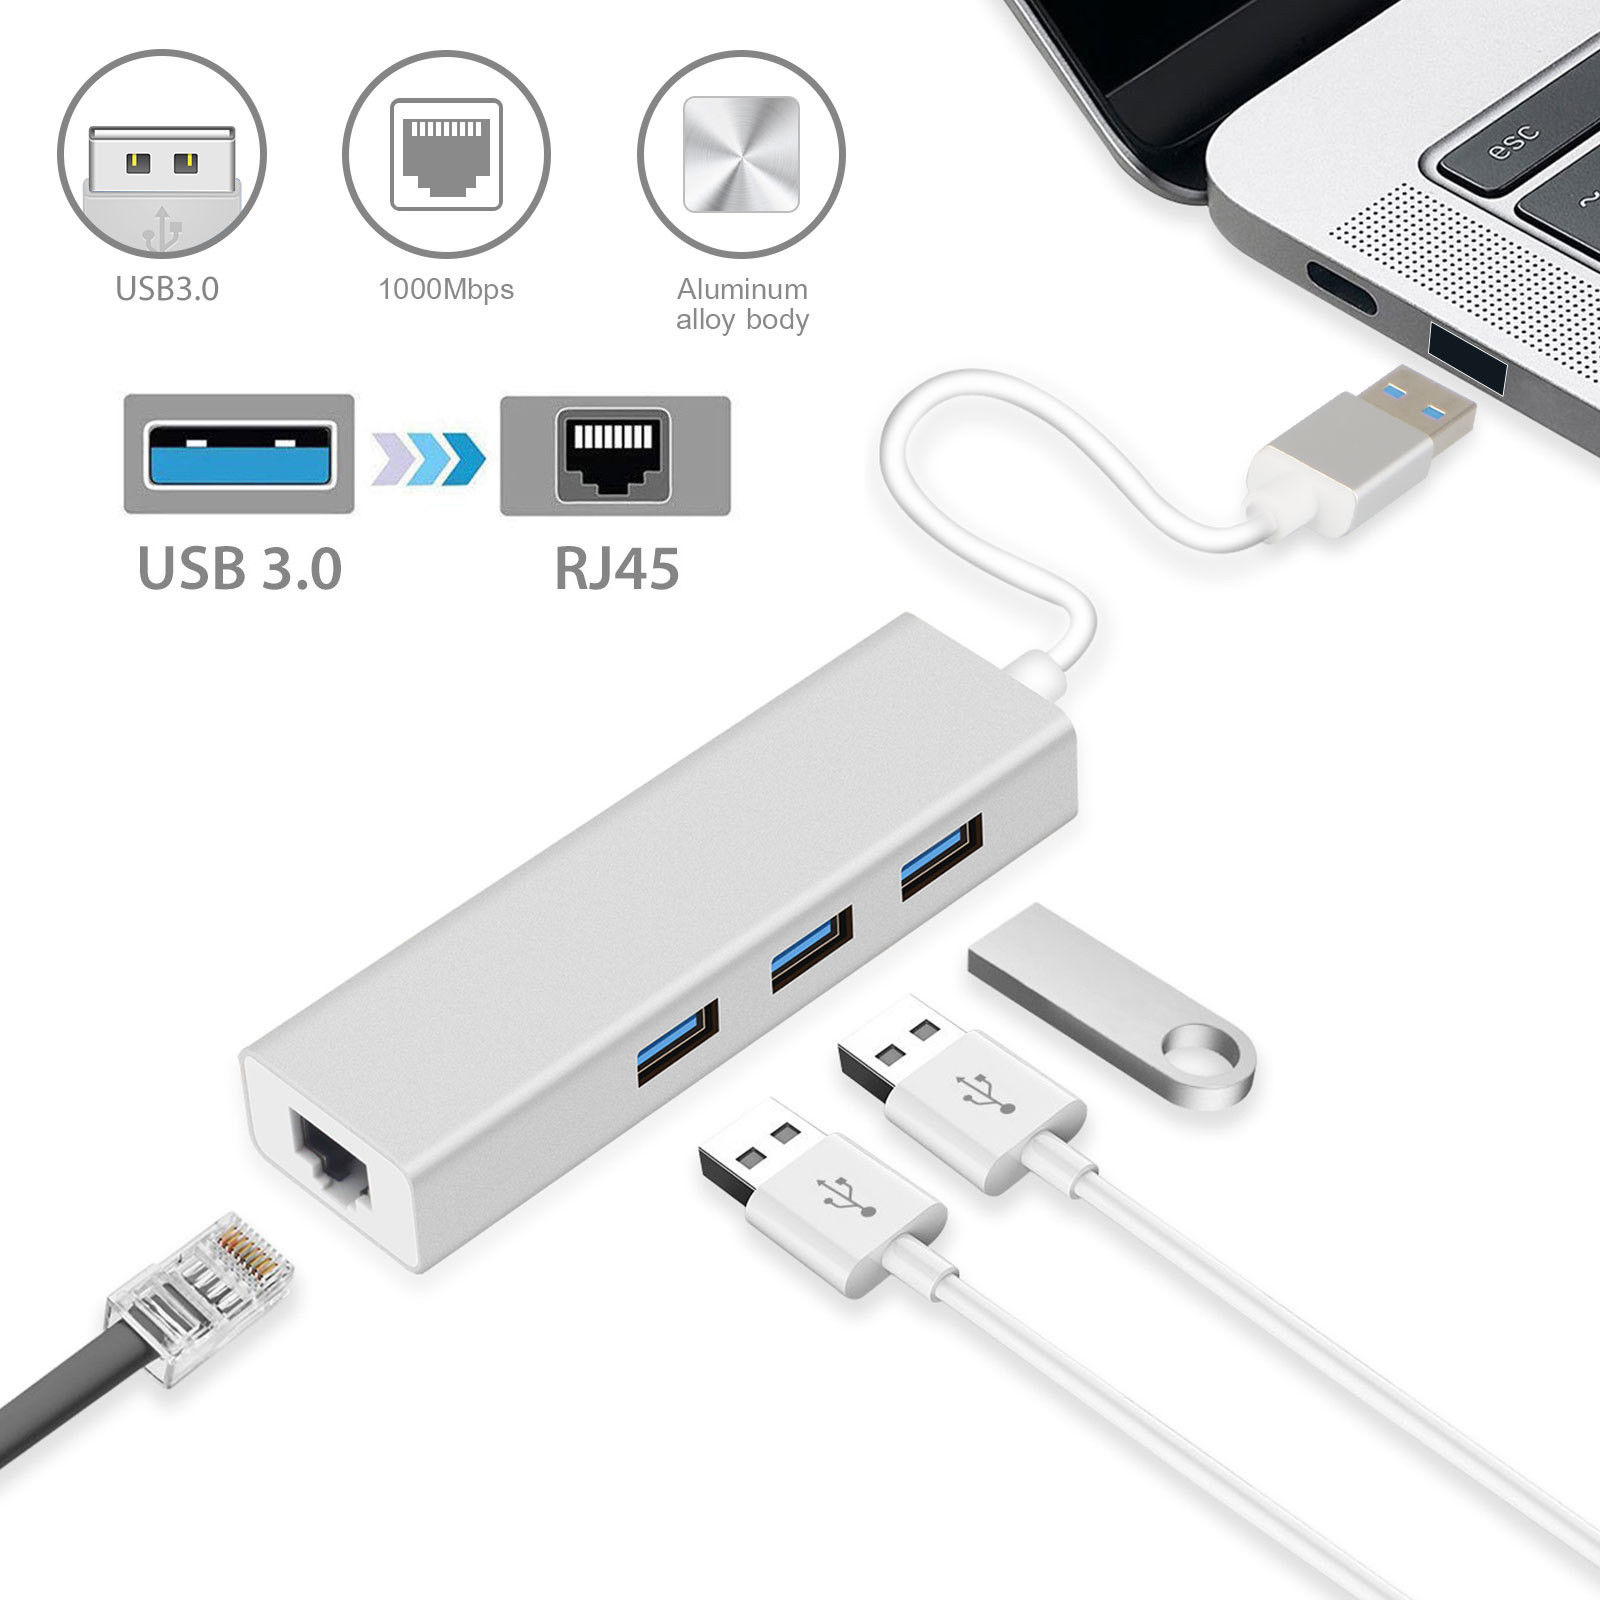 3 Ports USB 3.0 Gigabit Ethernet Lan RJ45 Network Adapter Hub to 1000Mbps for MacBook Air MacBook Pro iMac Microsoft Surface Pro ThinkPad Samsung Dell PC